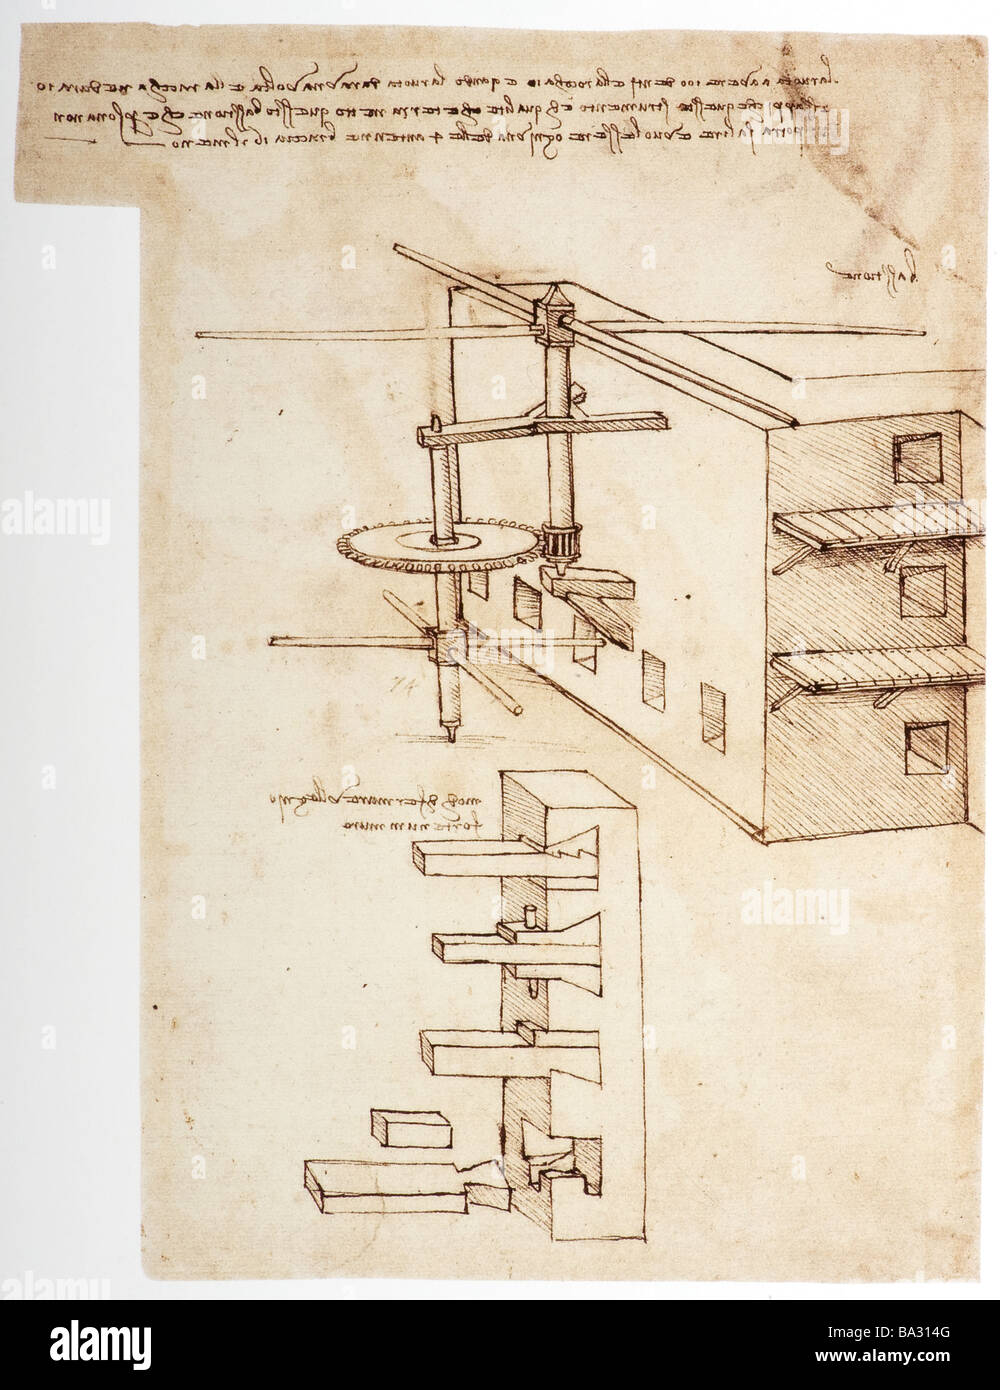 Machine to Prevent Fortress Walls being Scaled by Leonardo da Vinci 1480 pen and ink - Stock Image